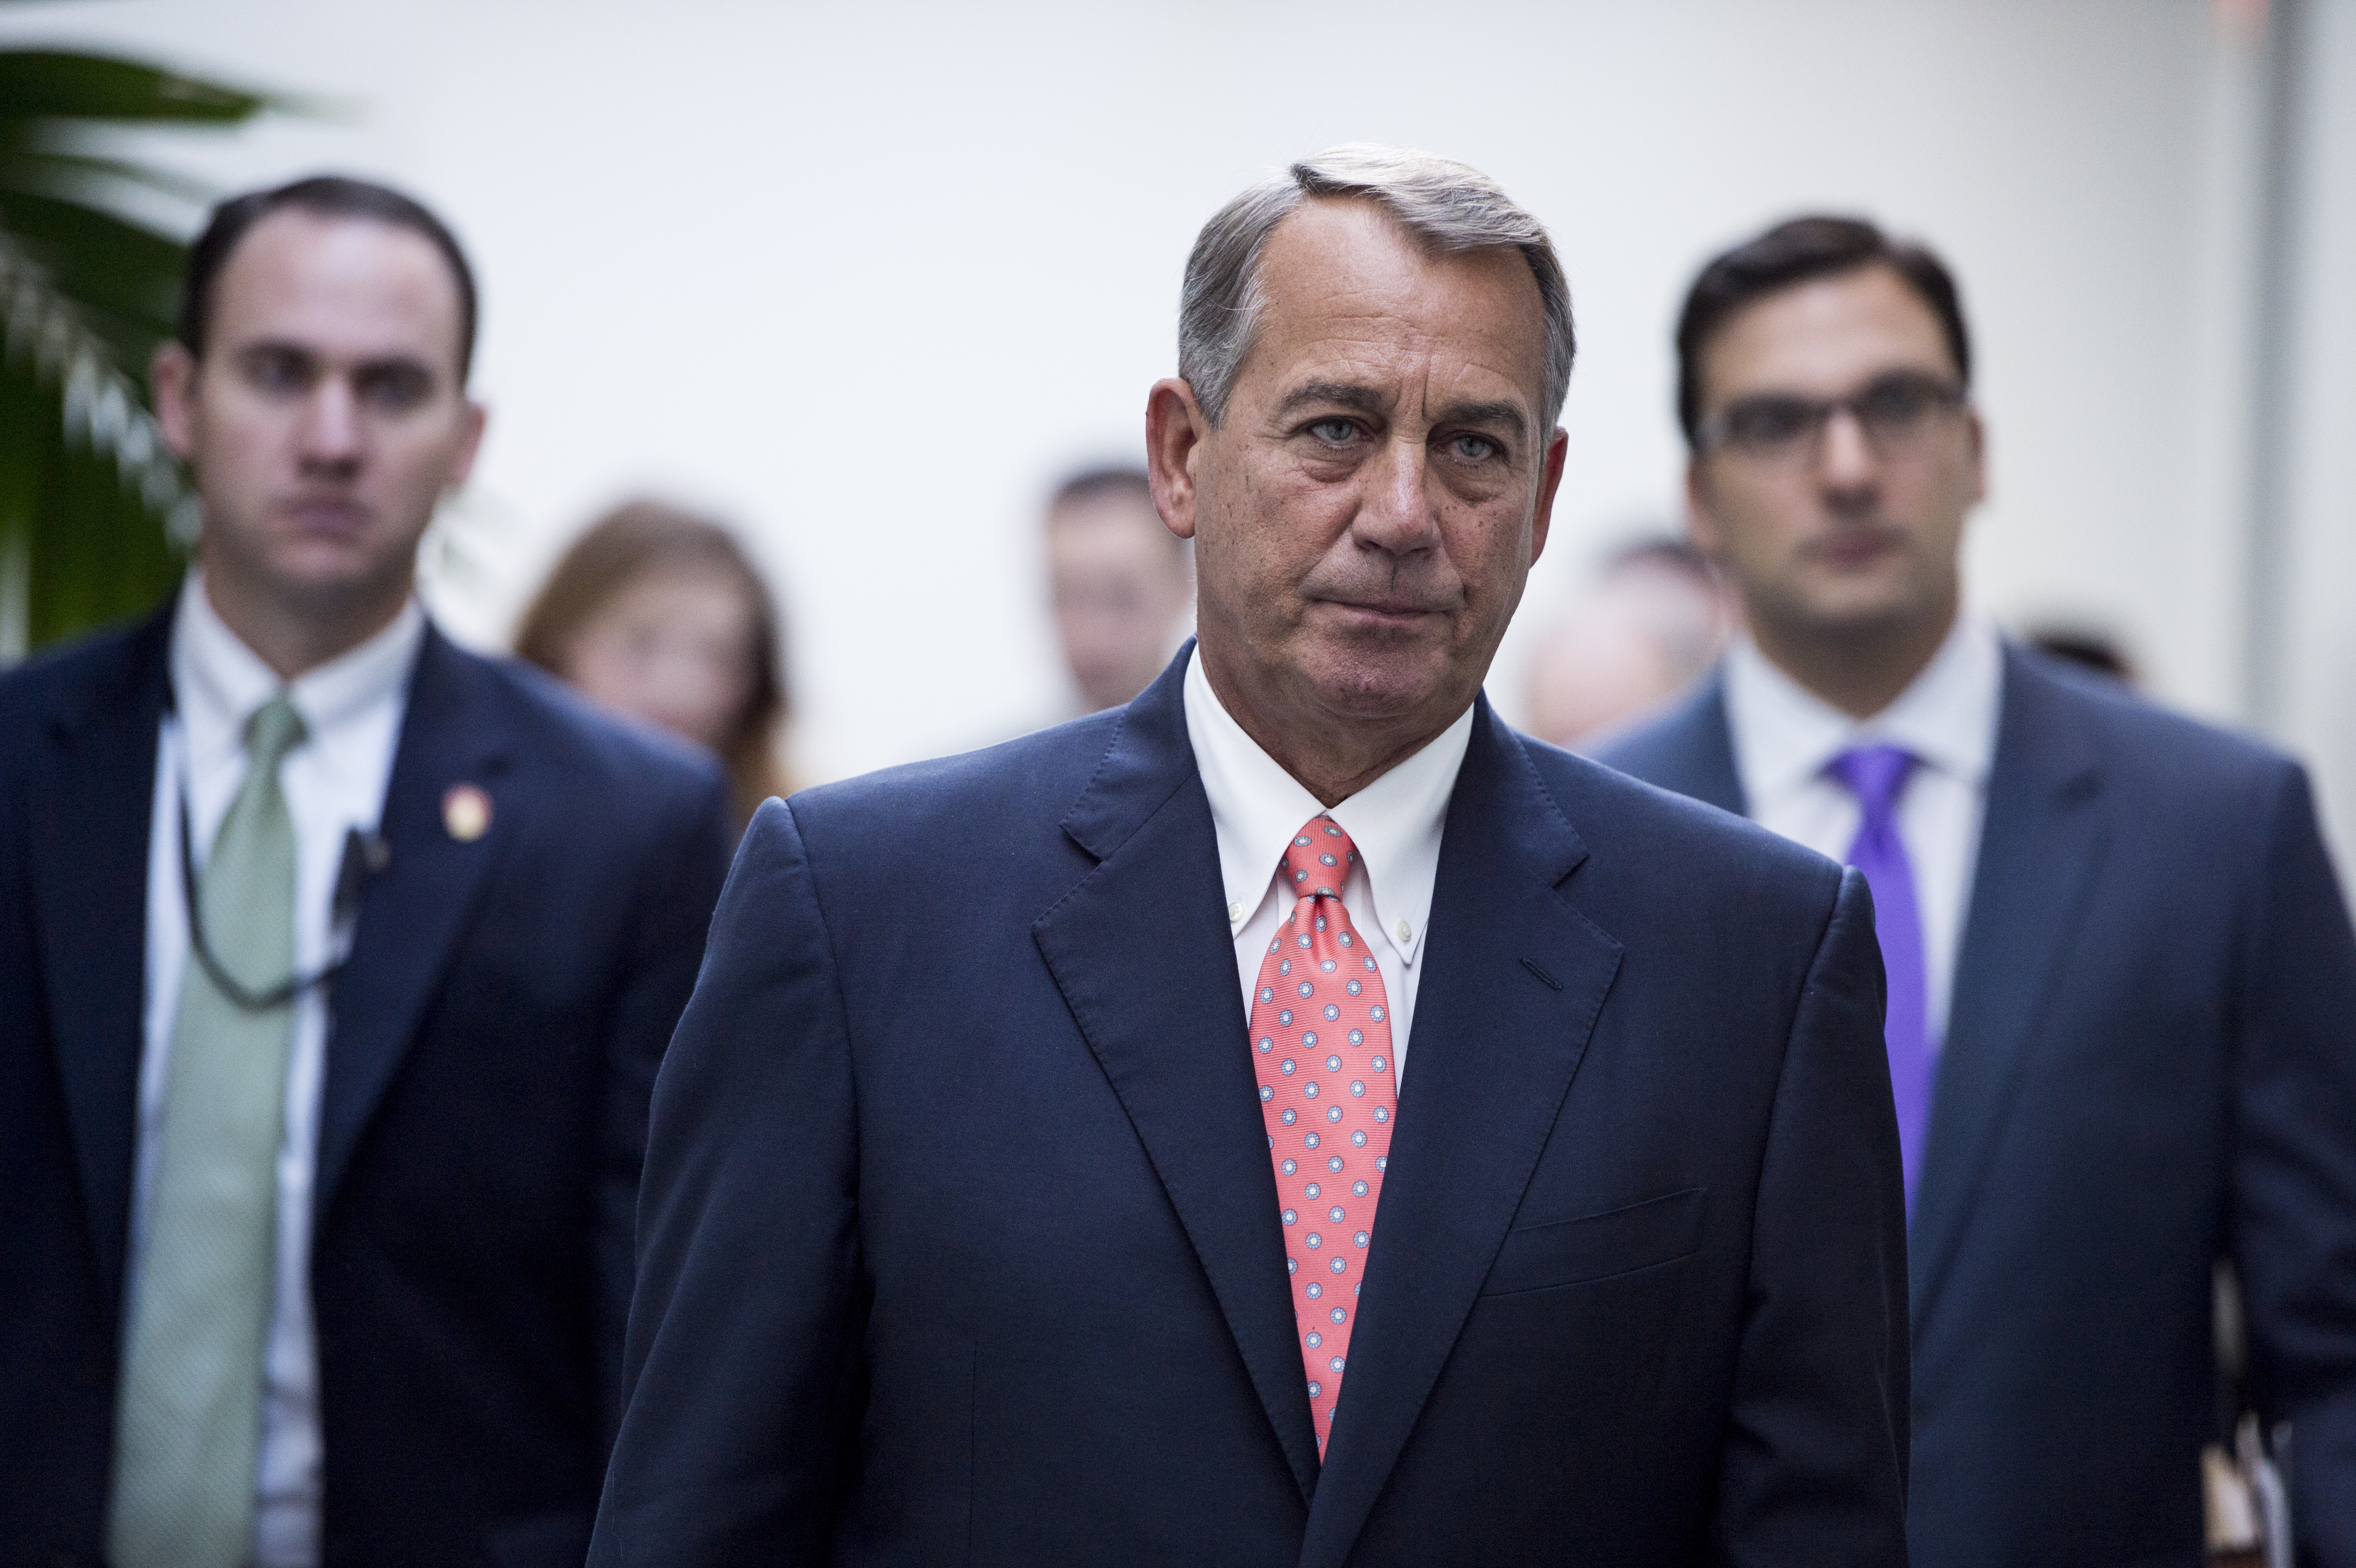 Speaker of the House John Boehner leaves the House Republican Conference meeting in the Capitol on Jan. 13, 2015.